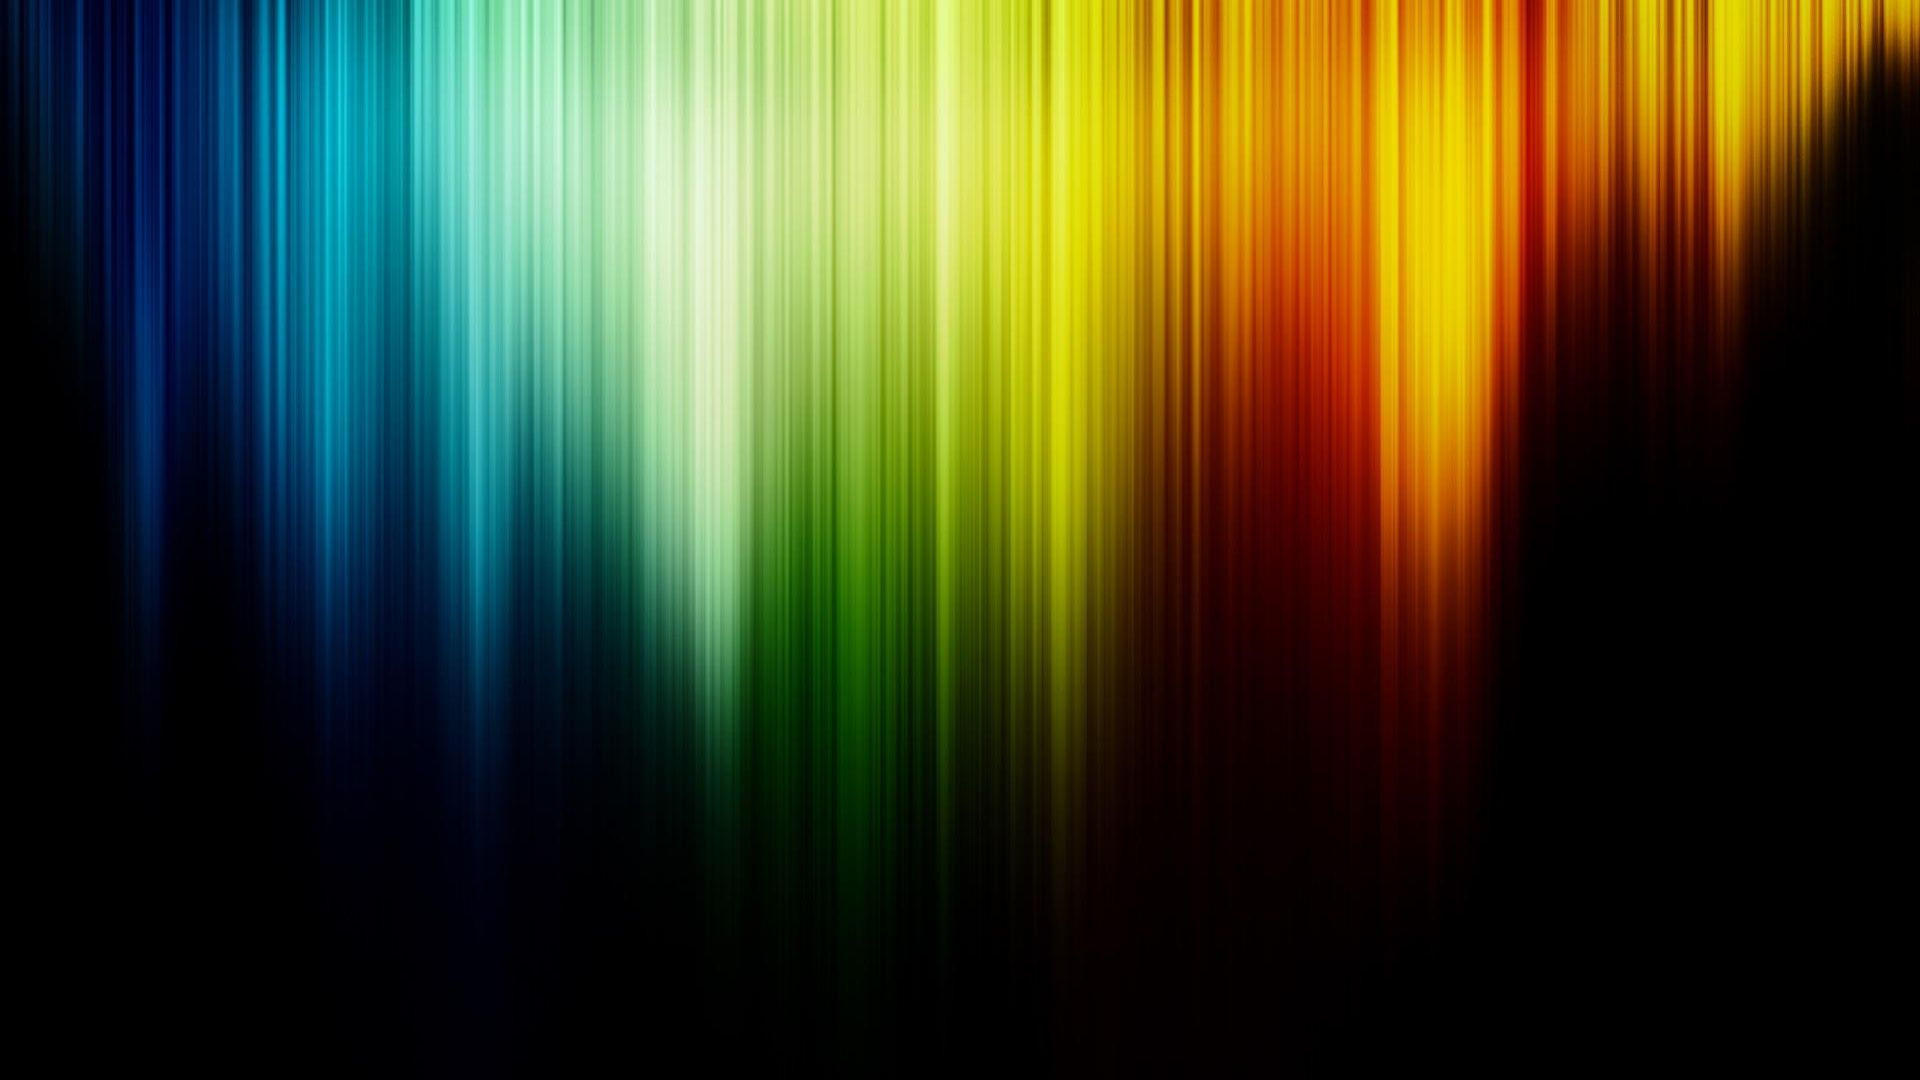 Bright color background wallpaper for Bright wallpaper